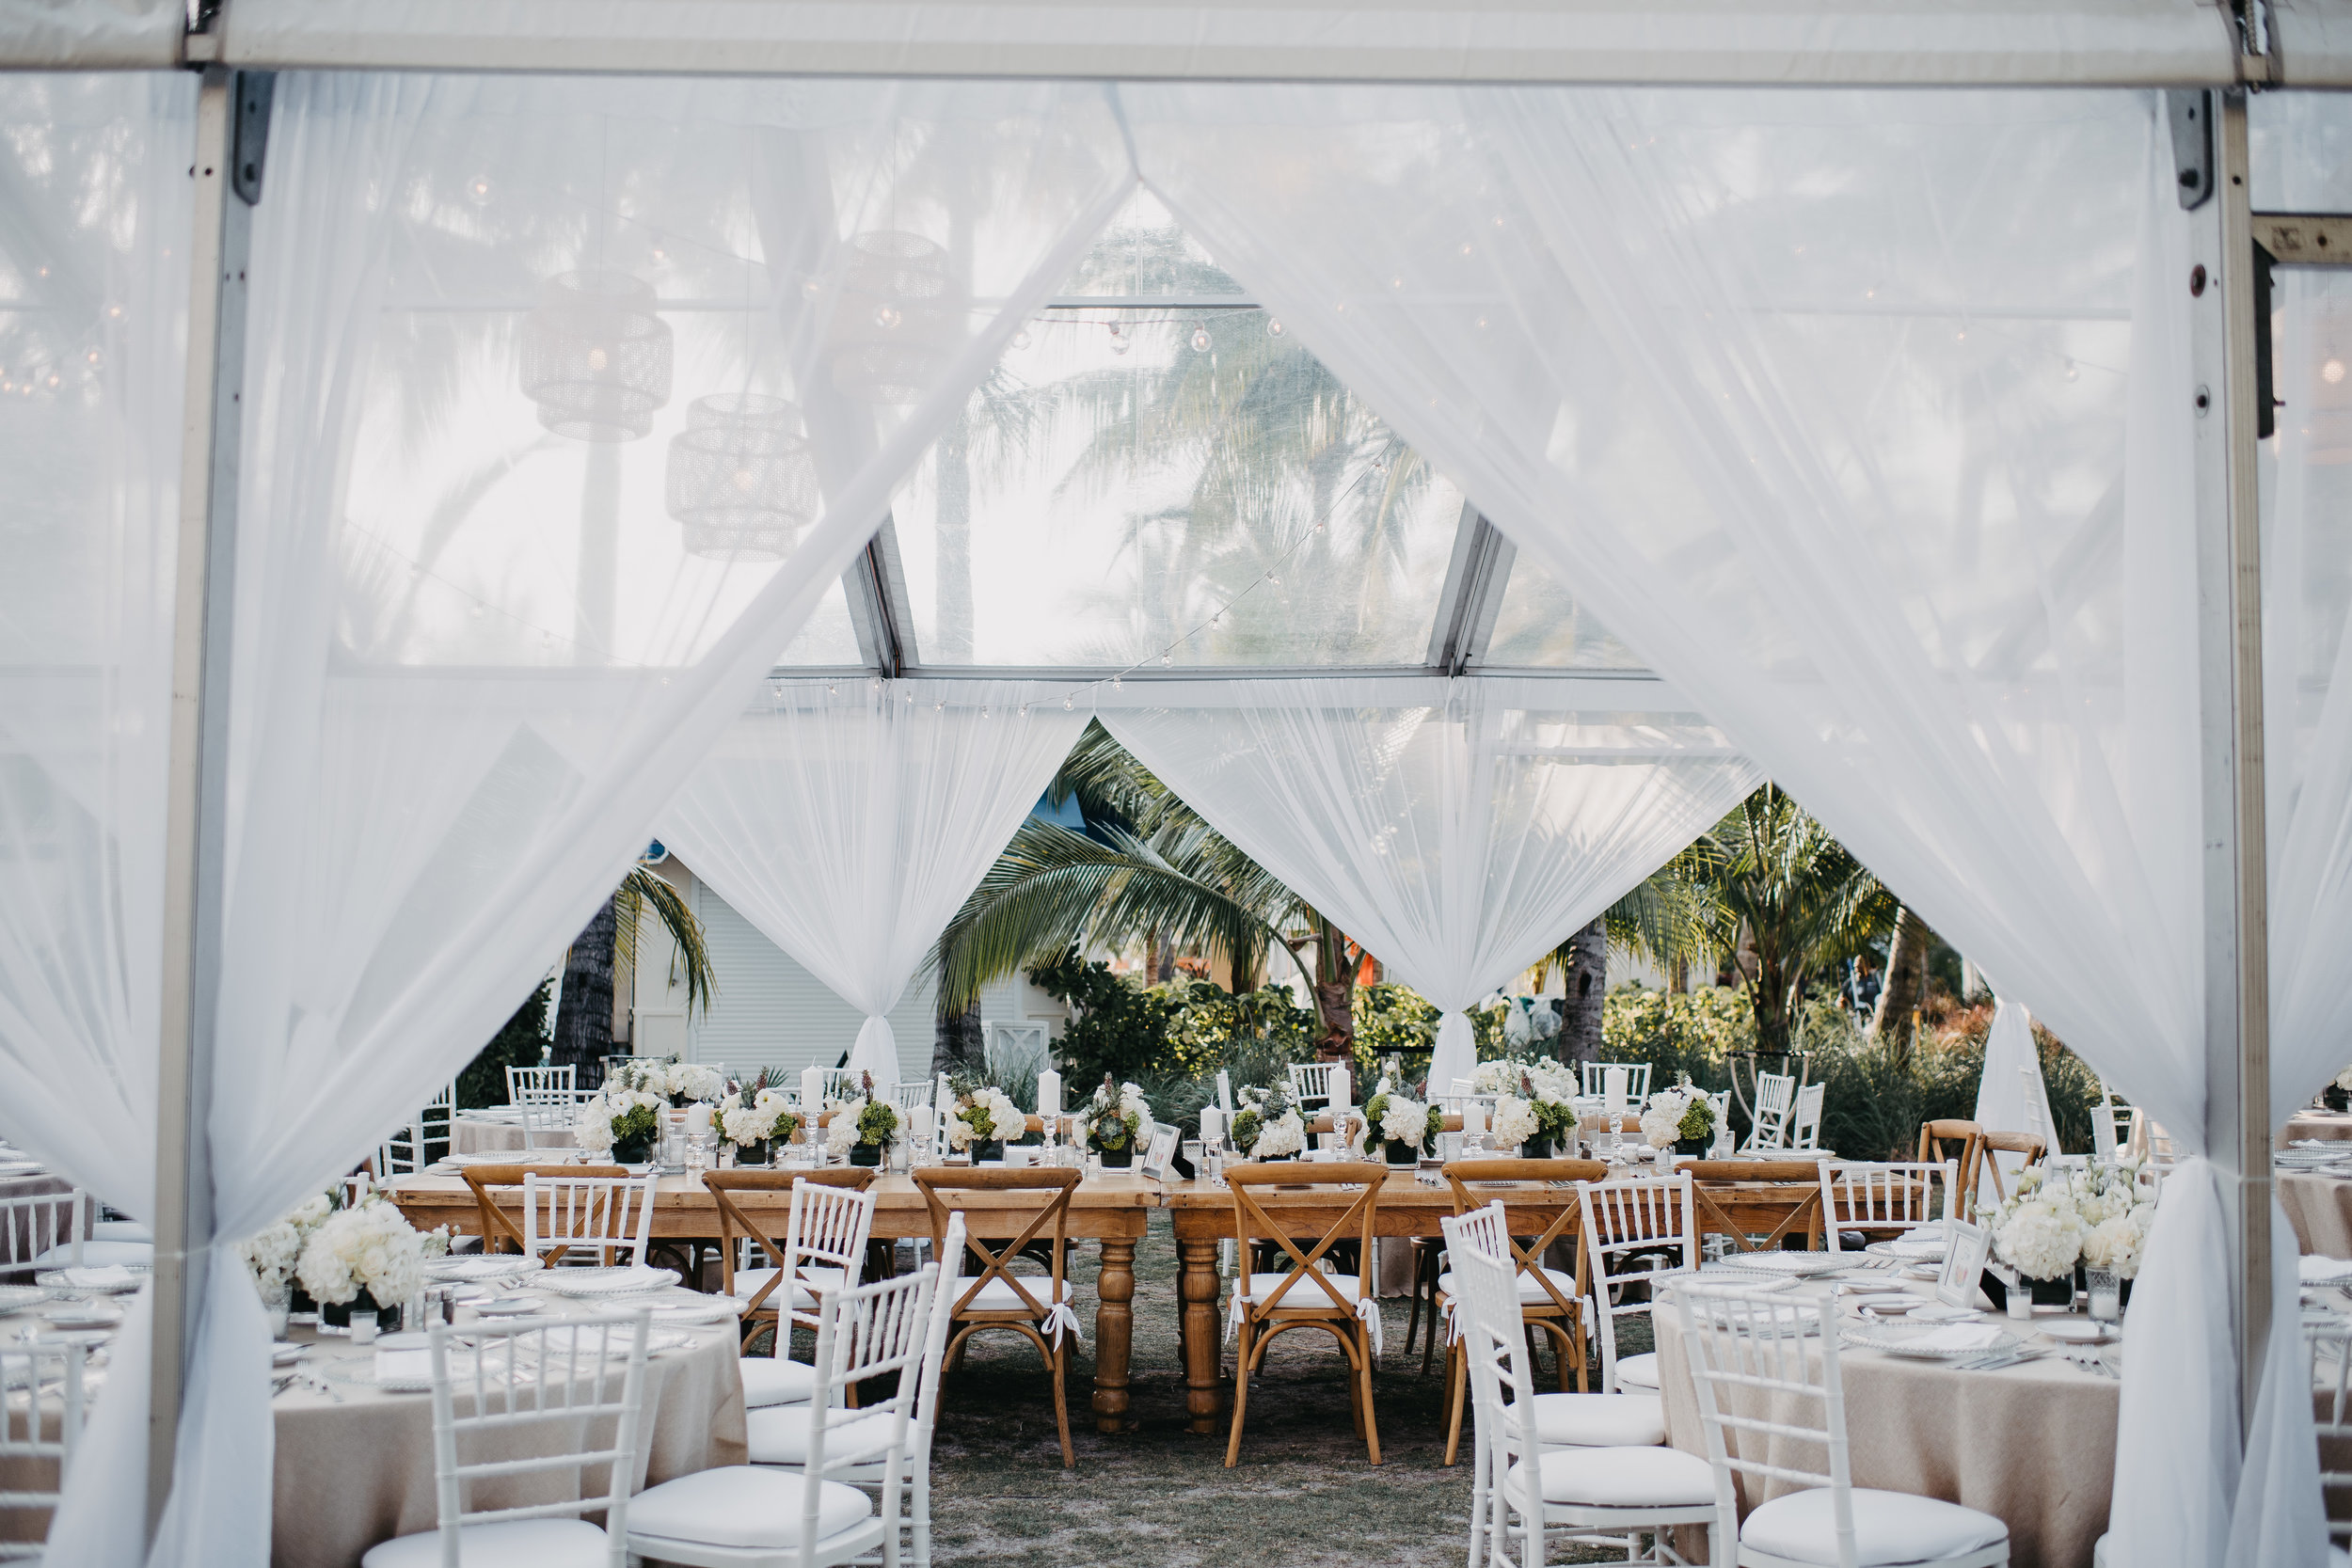 i love this set up by wild flower events in nassau Bahamas They are a sure top pick for Caribbean florist